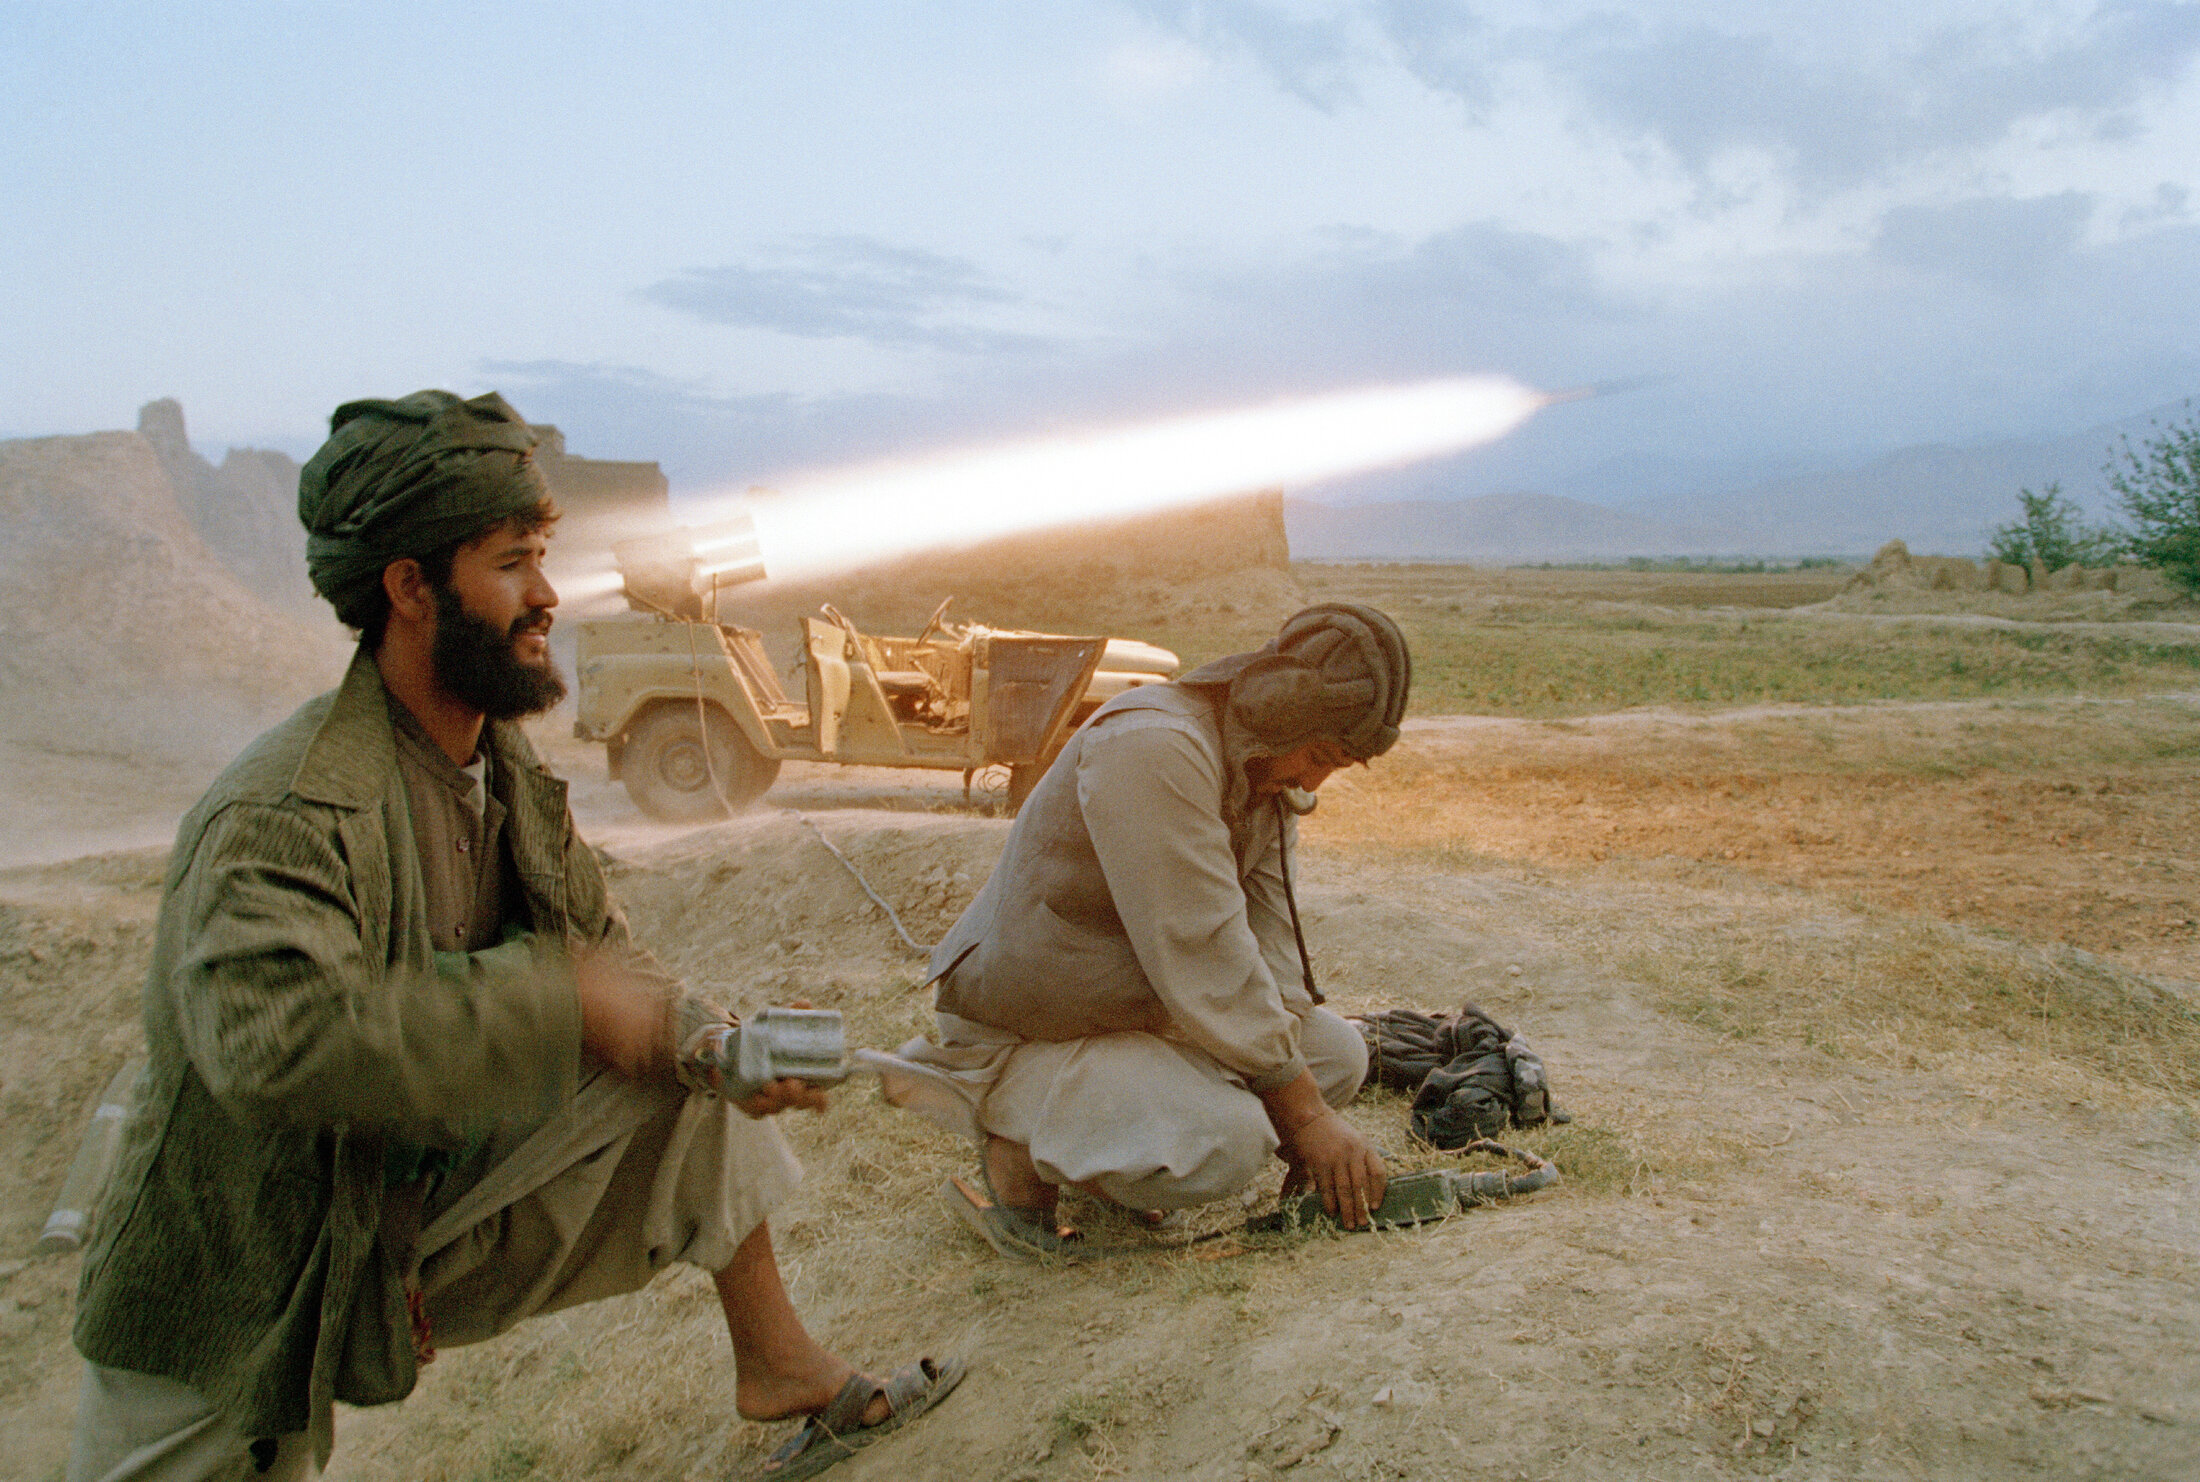 Taliban soldiers fire a rocket at retreating Northern Alliance army forces shortly before taking control of Kabul on Sept. 27, 1996.